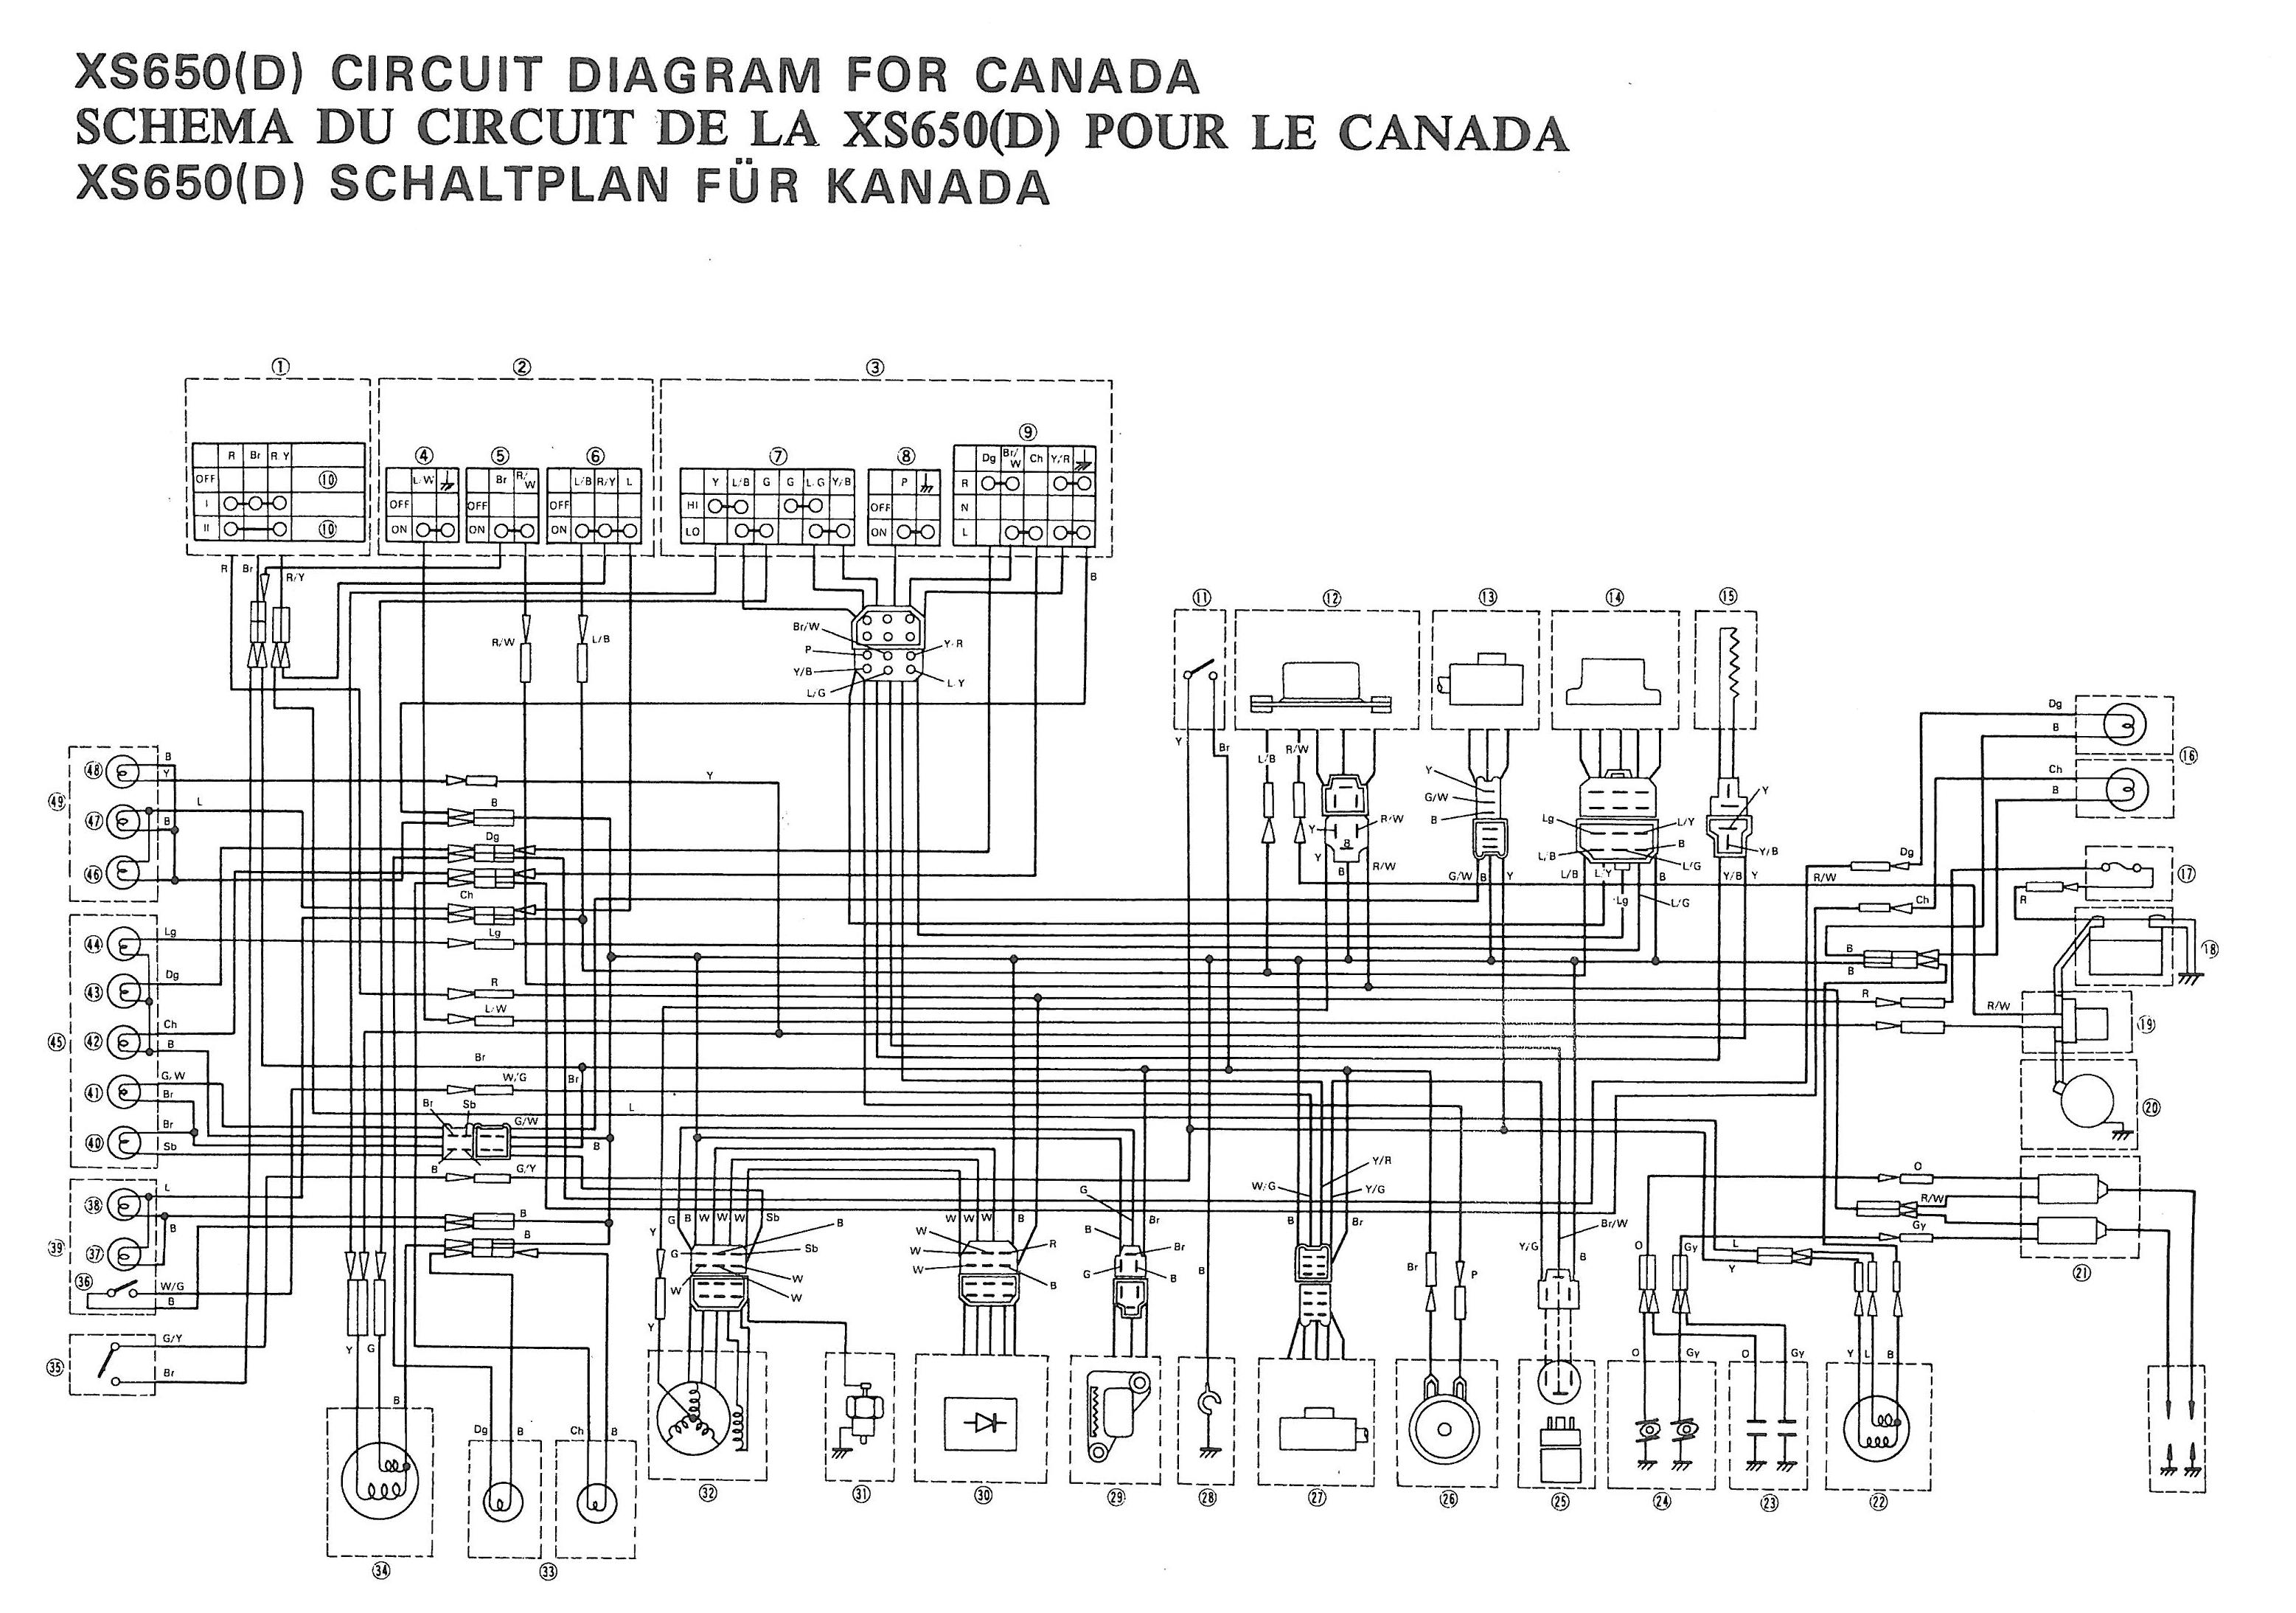 small resolution of 1979 yamaha xs750 special wiring diagram hobbiesxstyle 1981 xs650 wiring diagram 1978 yamaha xs650 wiring diagram